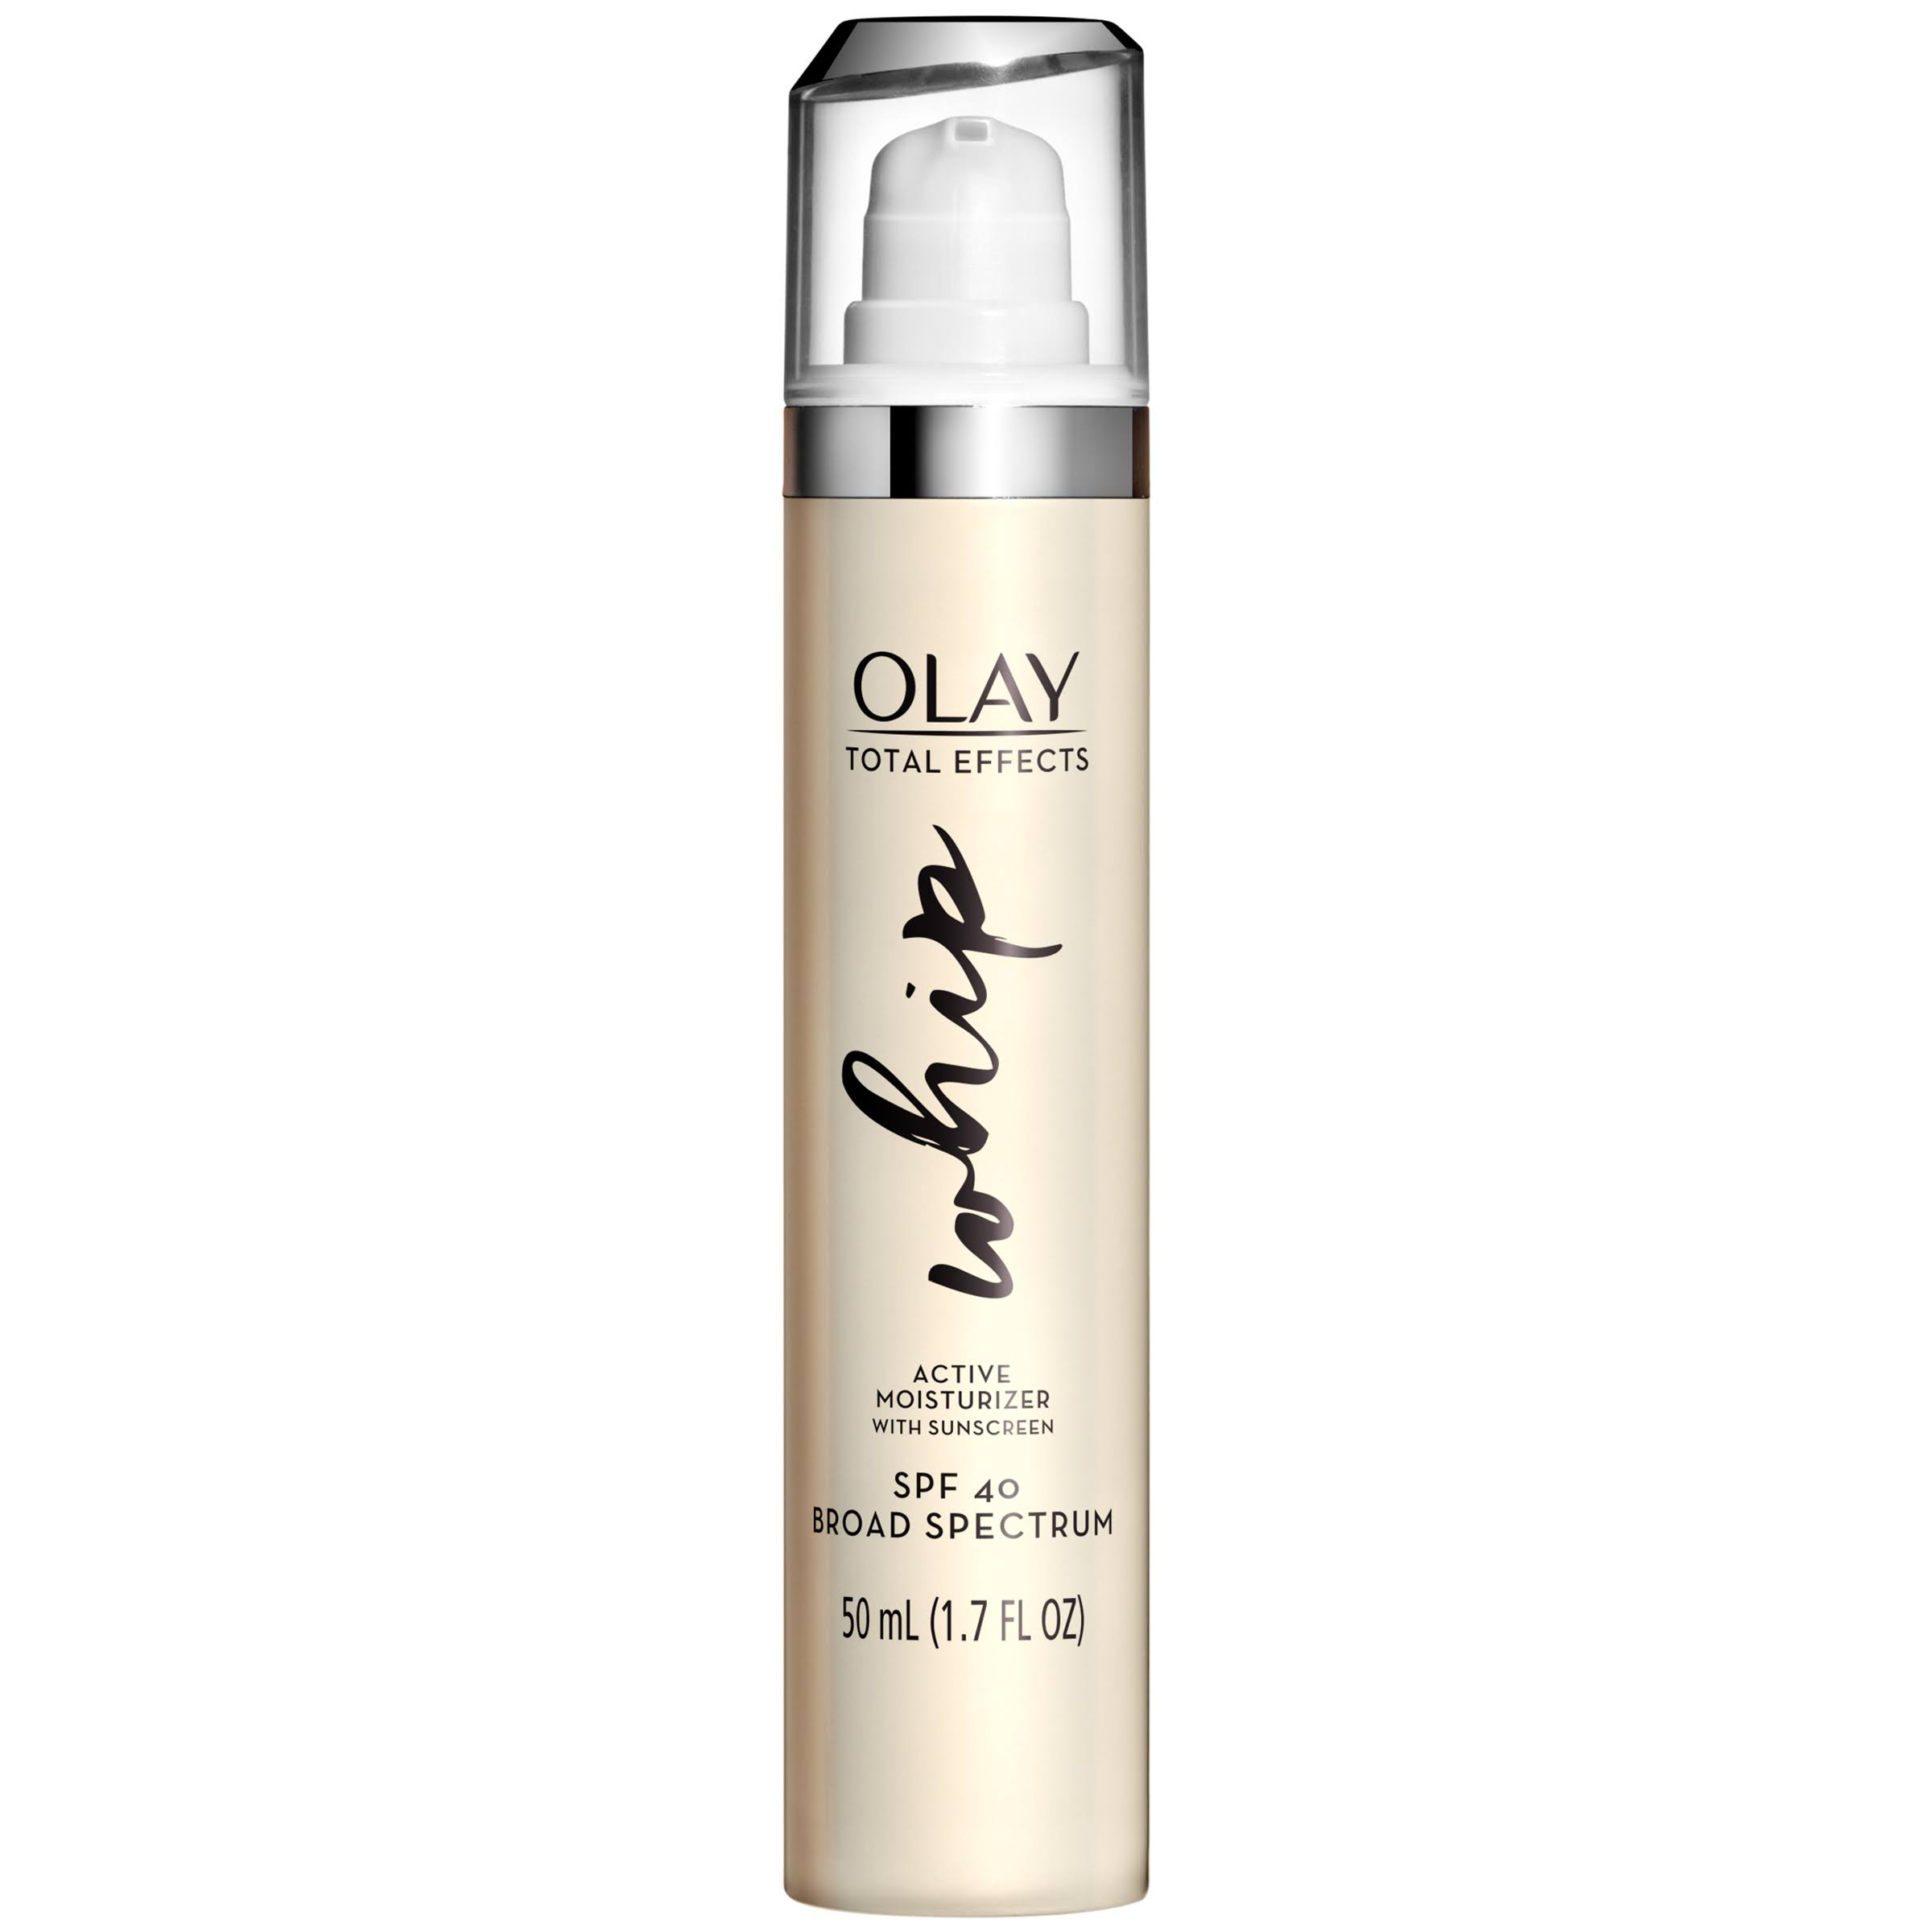 Olay Total Effects Whip Face Moisturizer with Sunscreen SPF 40, 1.7 fl oz